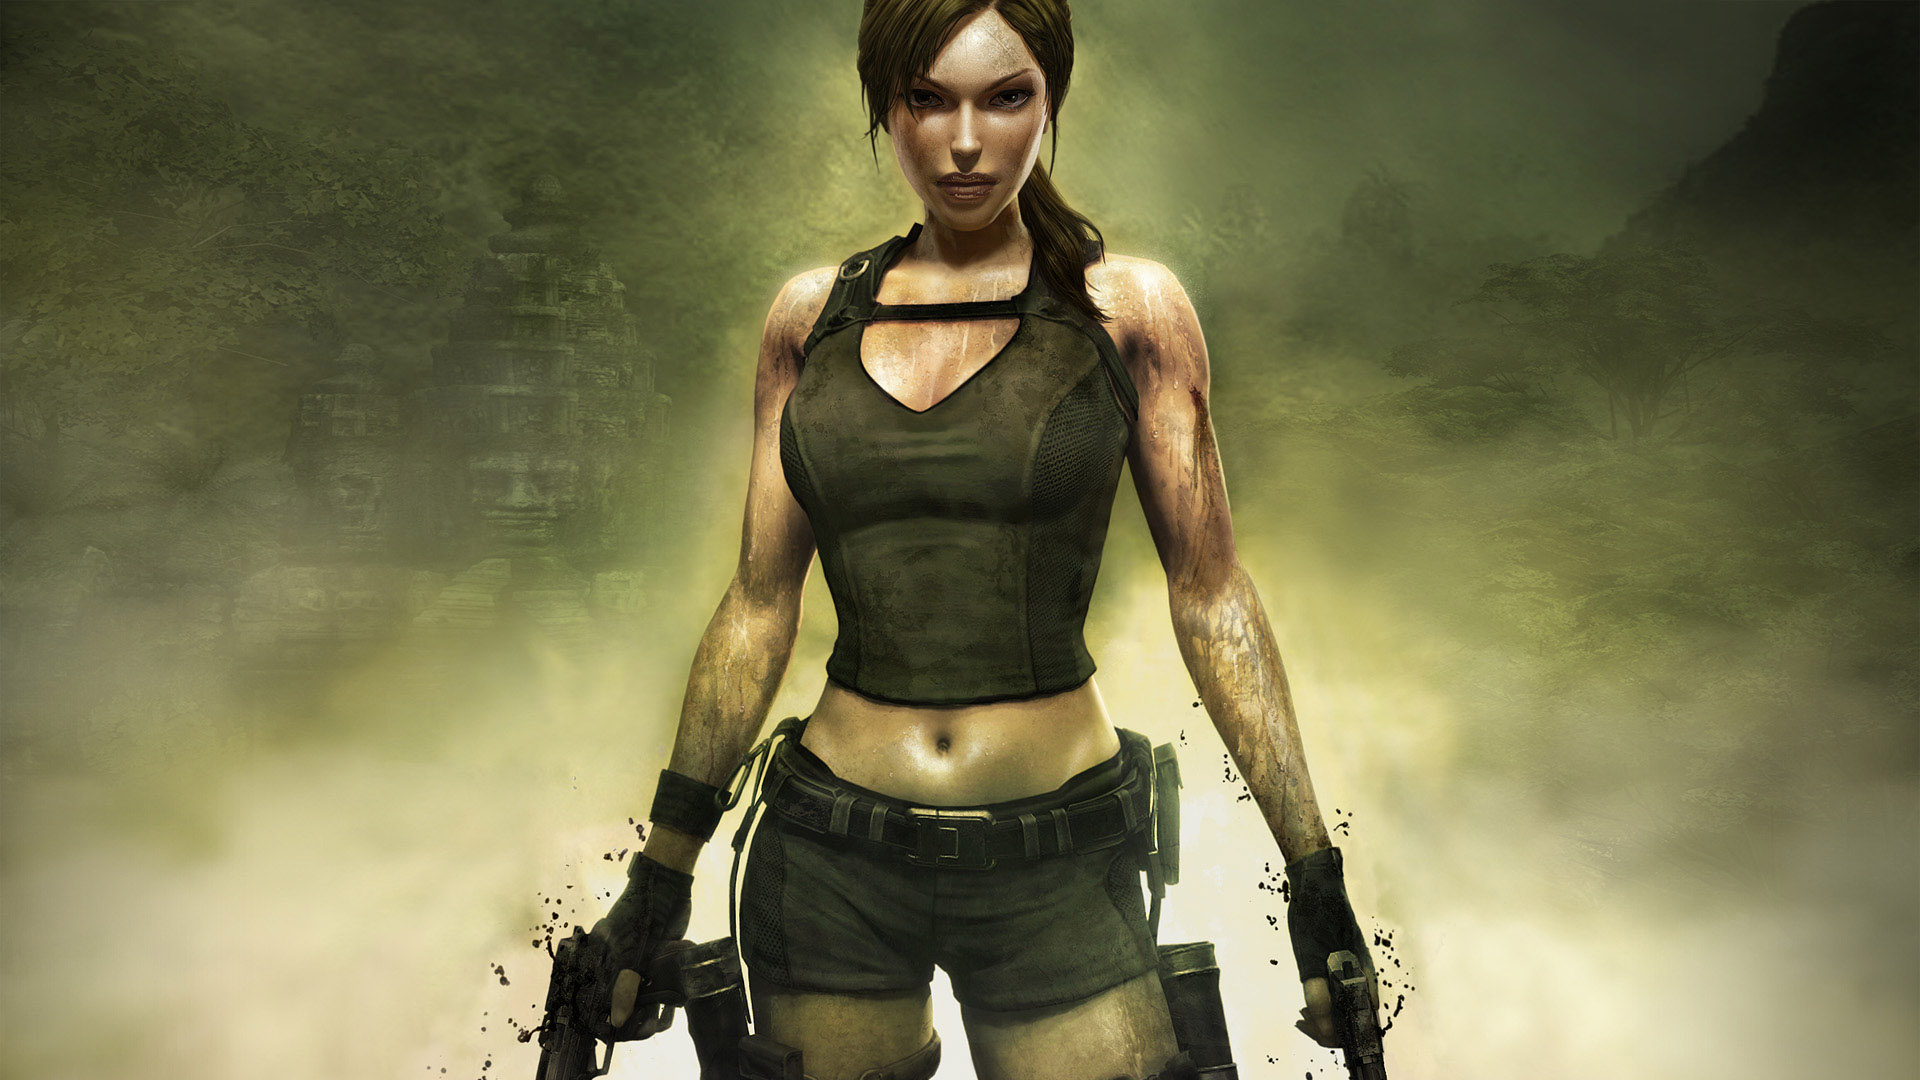 Lara Croft Tomb Raider Wallpaper 1920x1080 25687